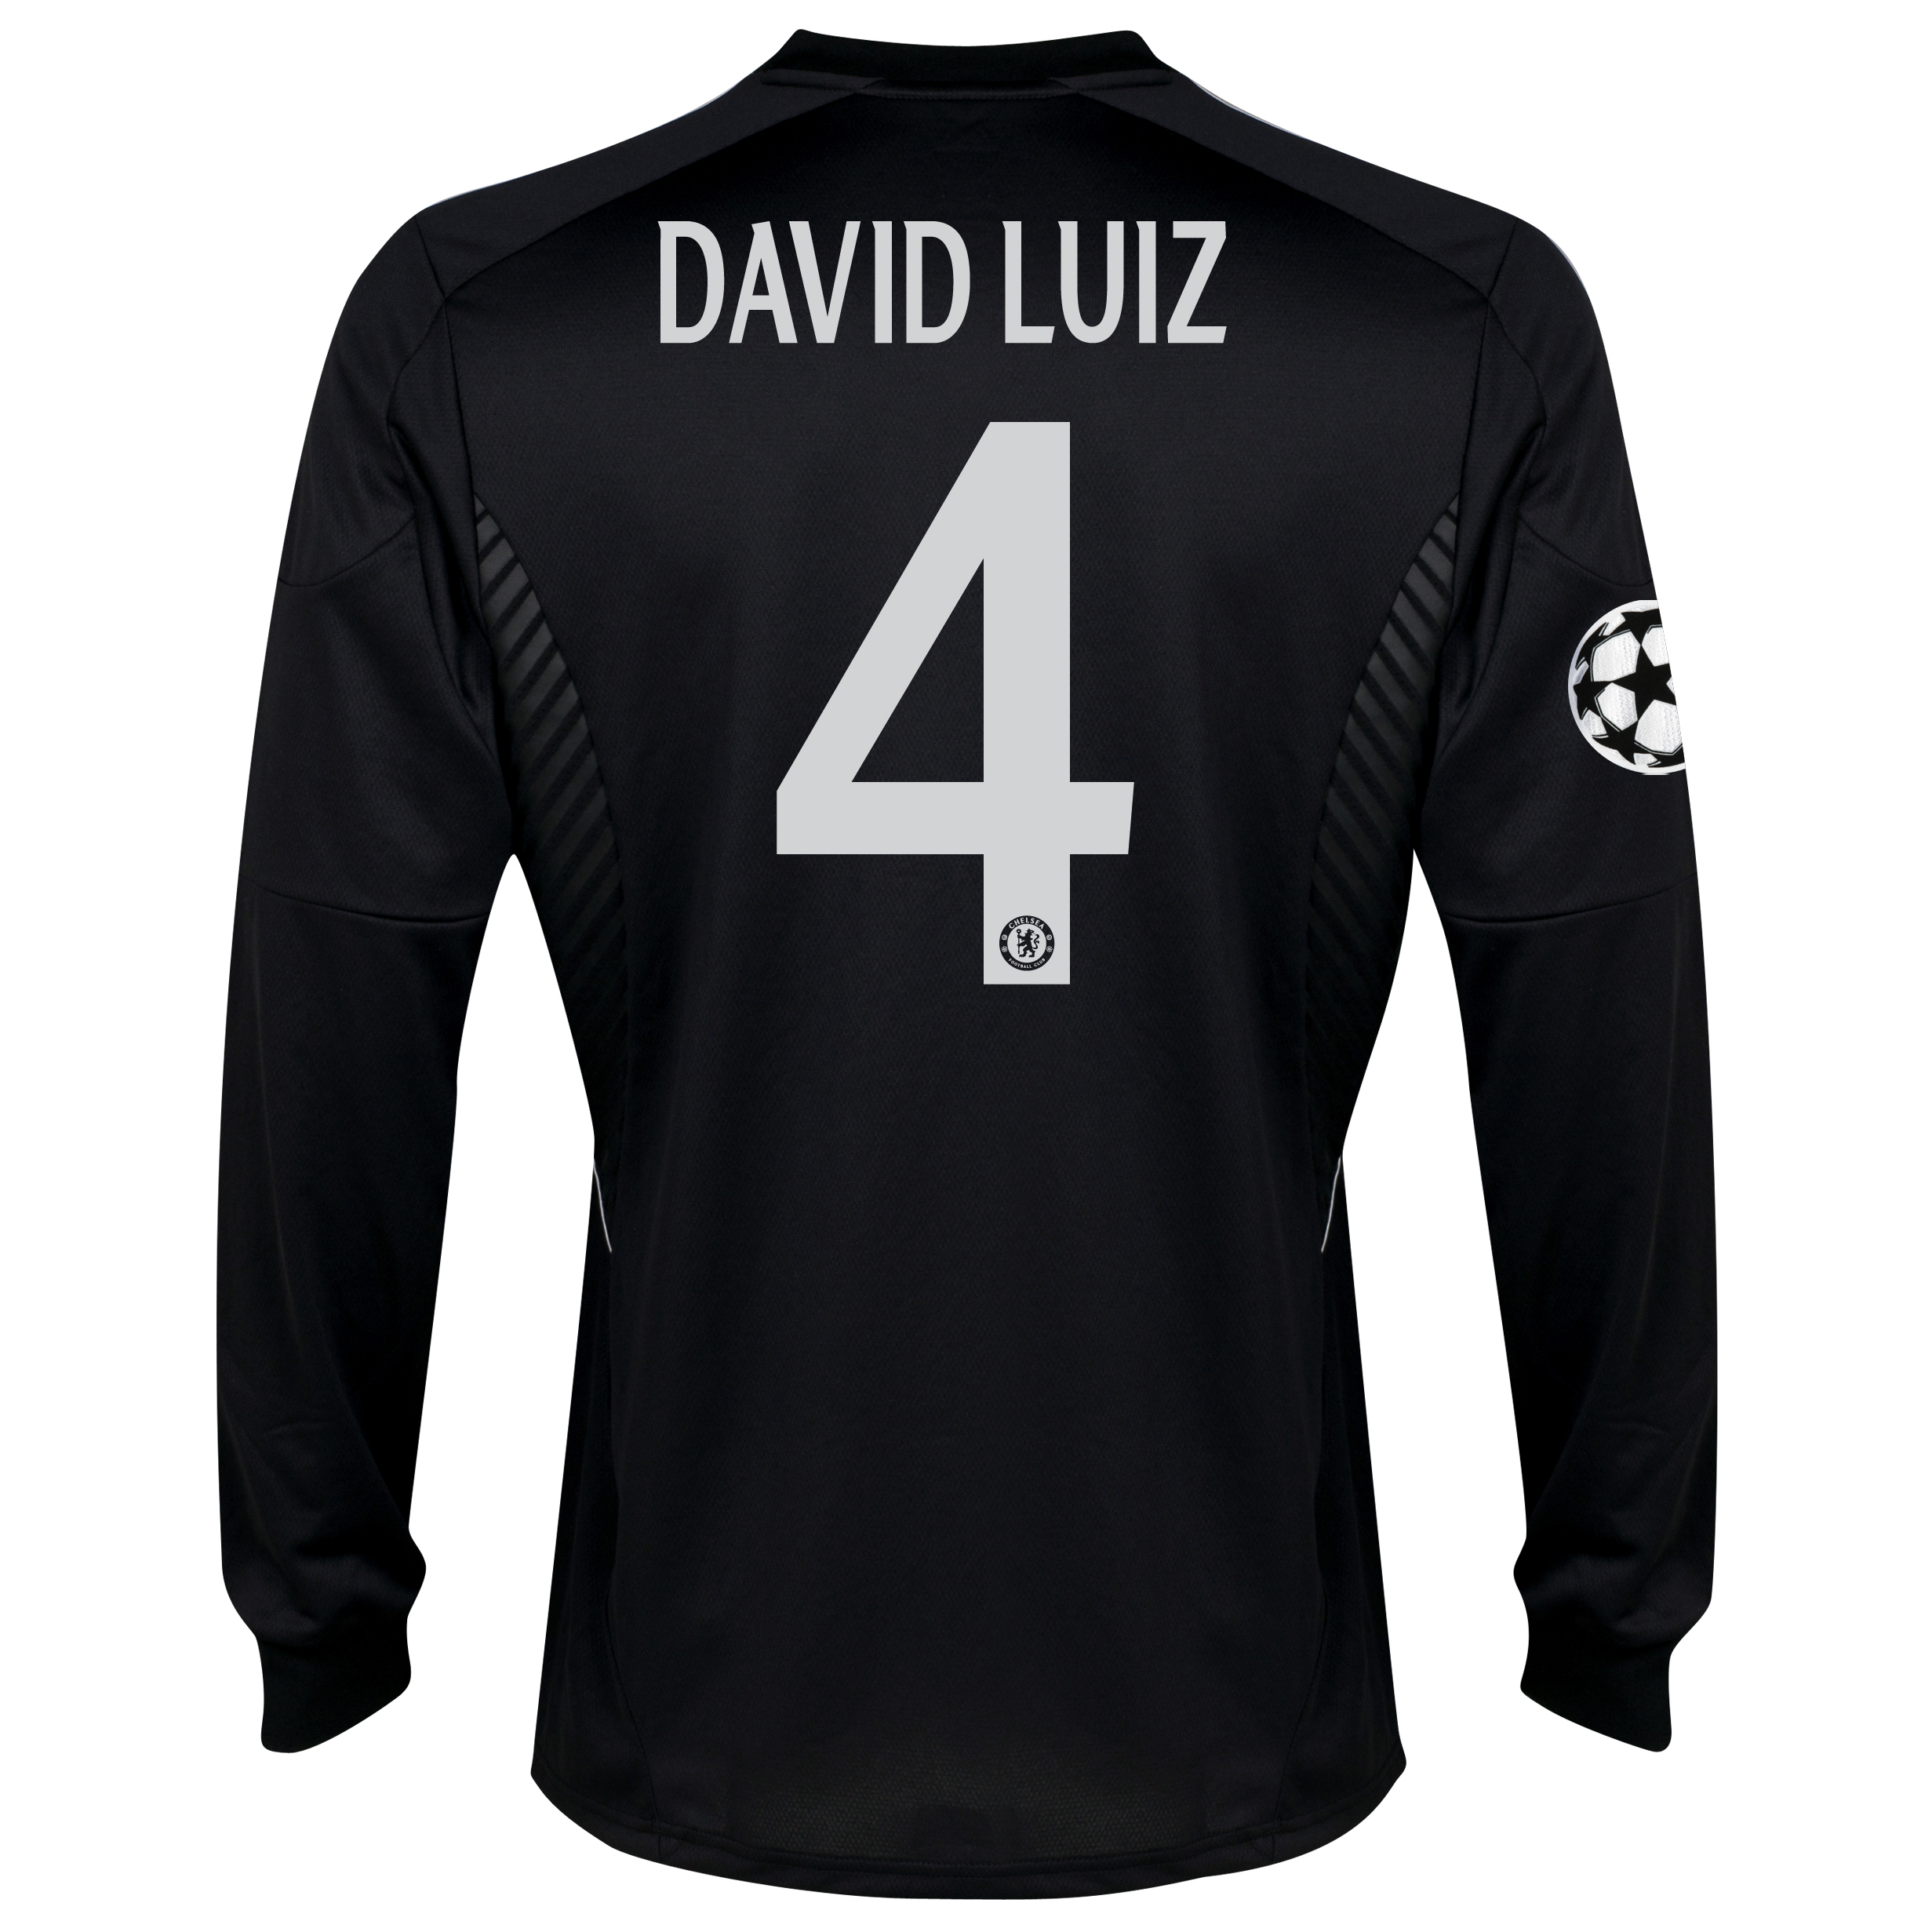 Chelsea UEFA Champions League Third Shirt 2013/14 - Long Sleeve with David Luiz 4 printing